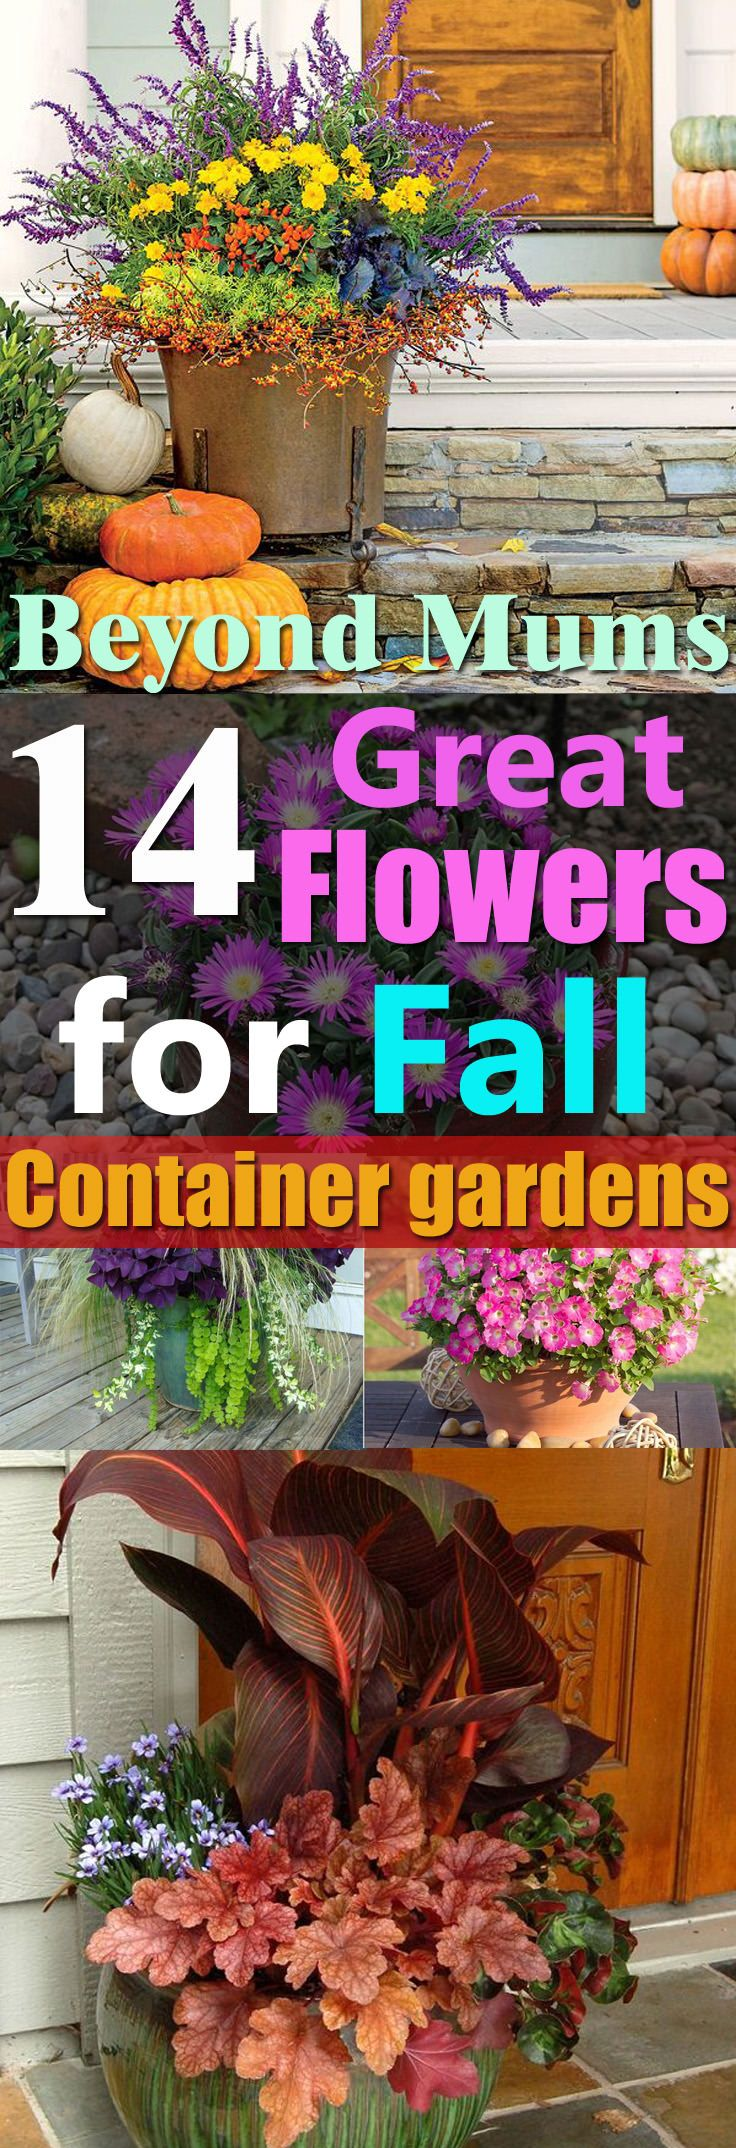 Not only the mums, but there are also other fall flowers for containers that you can grow for a great show of colors in autumn!